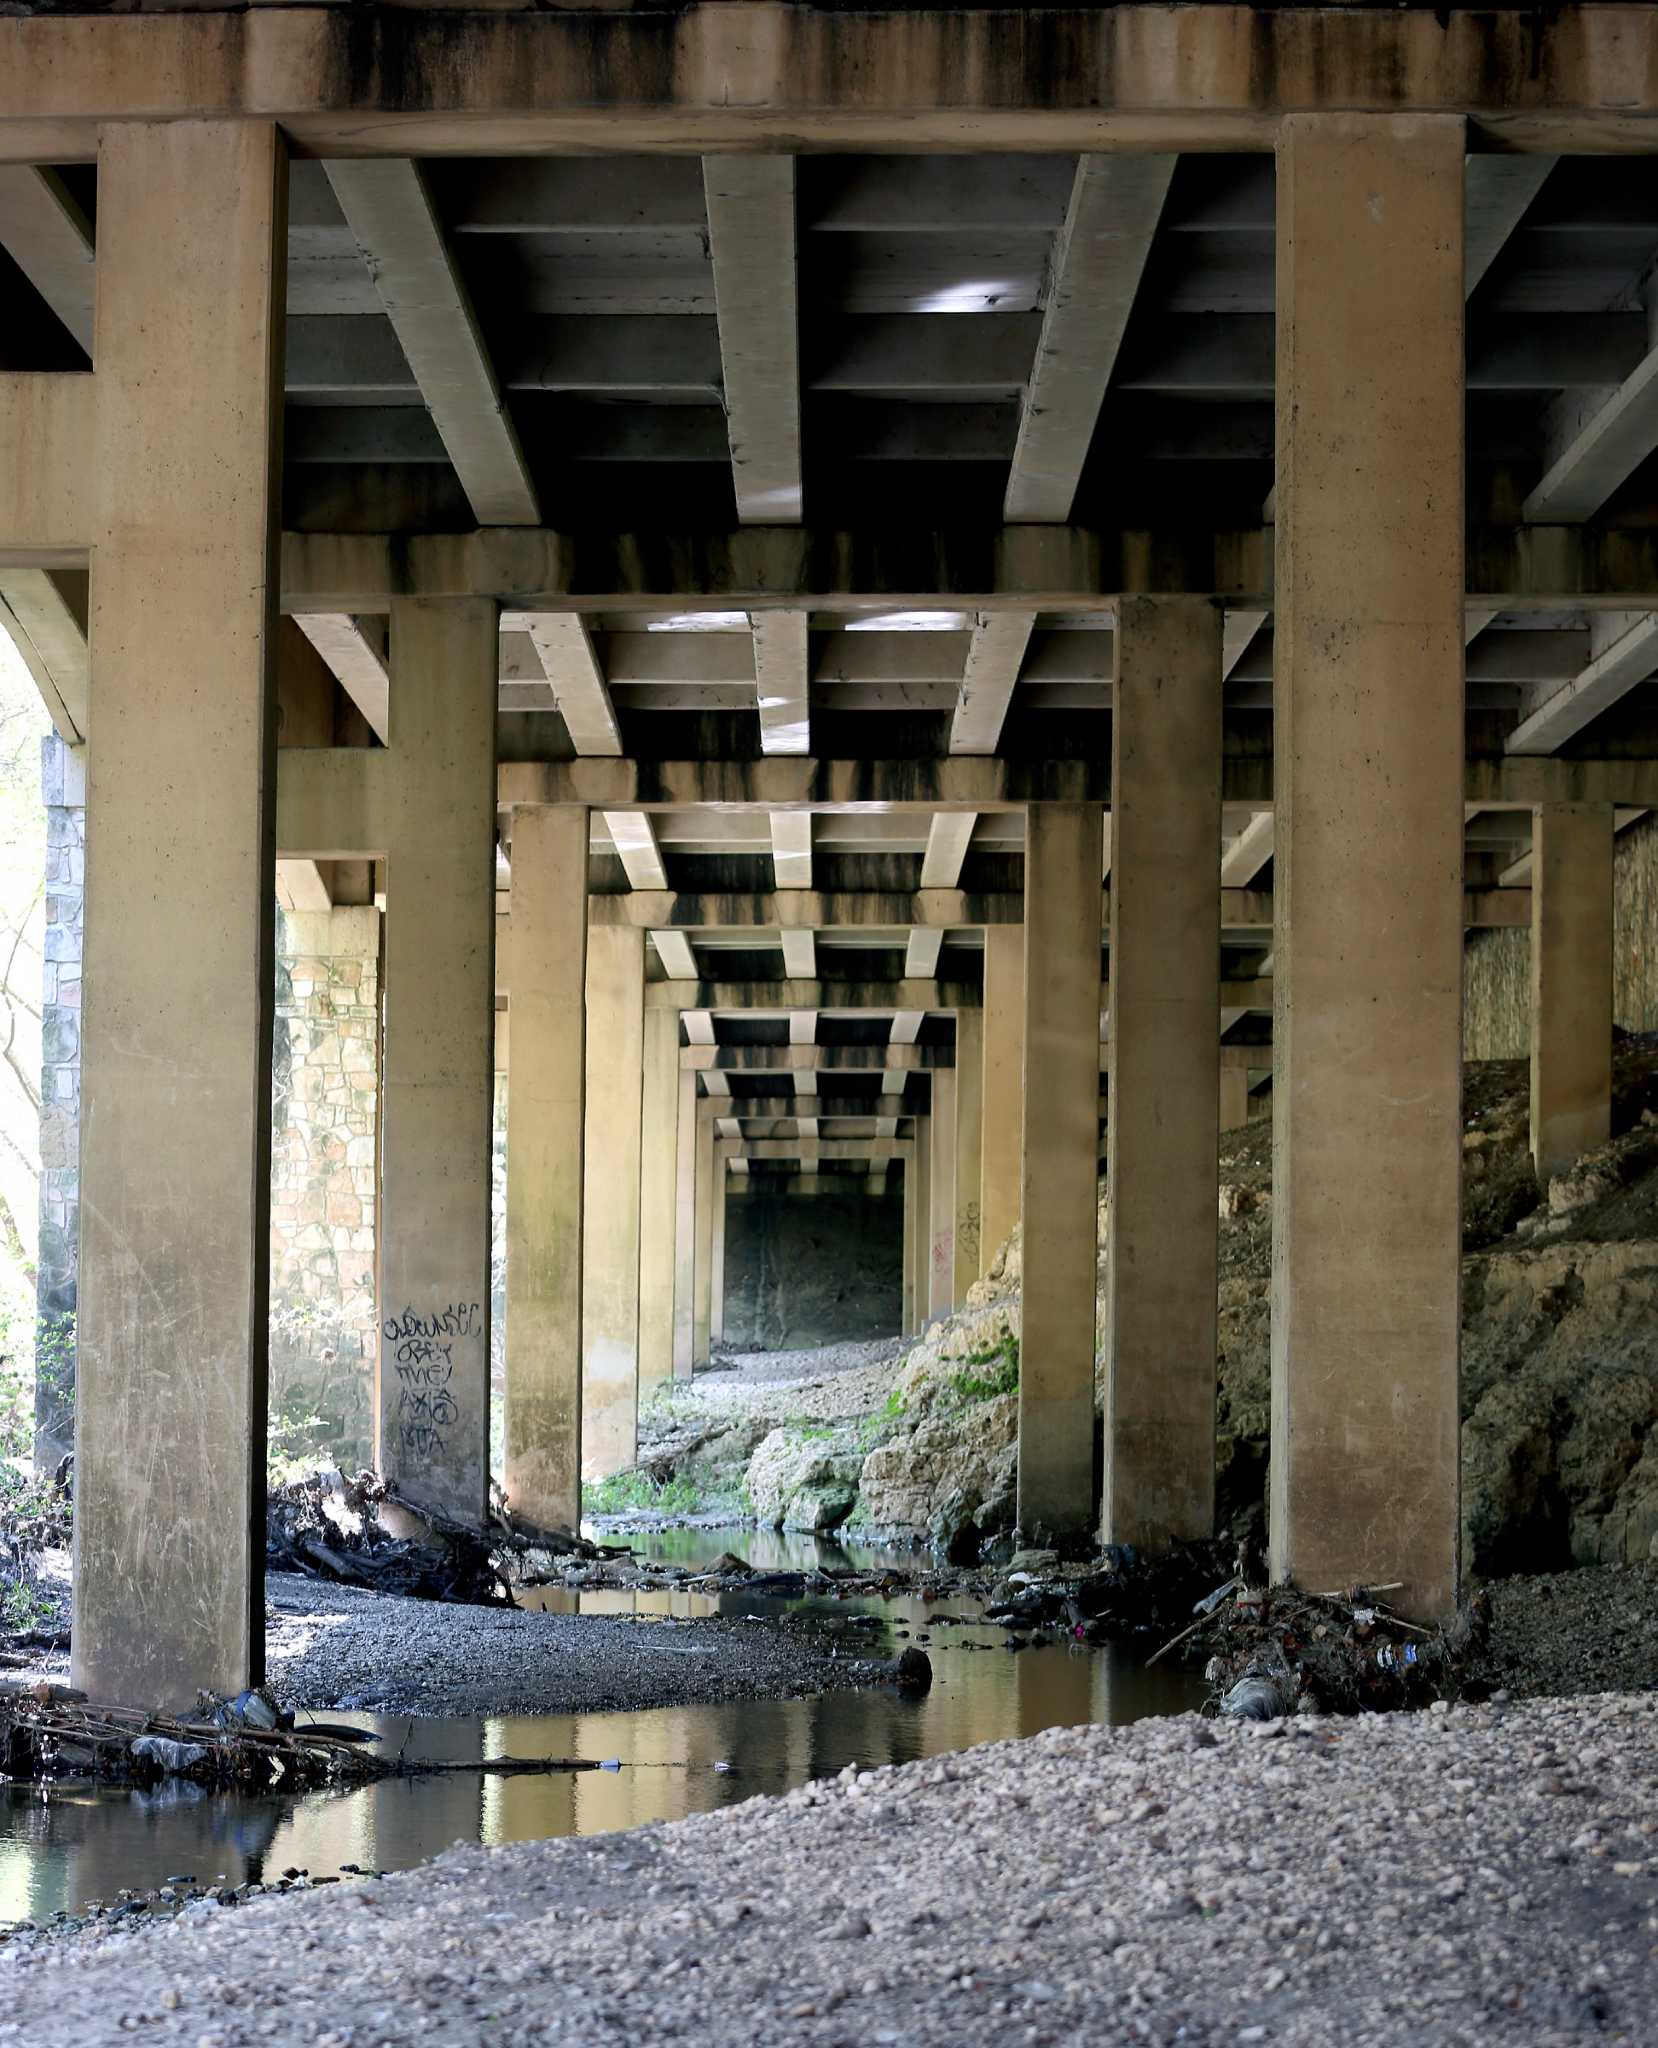 Project Could Breathe New Life Into Olmos Creek Laredo Morning Times